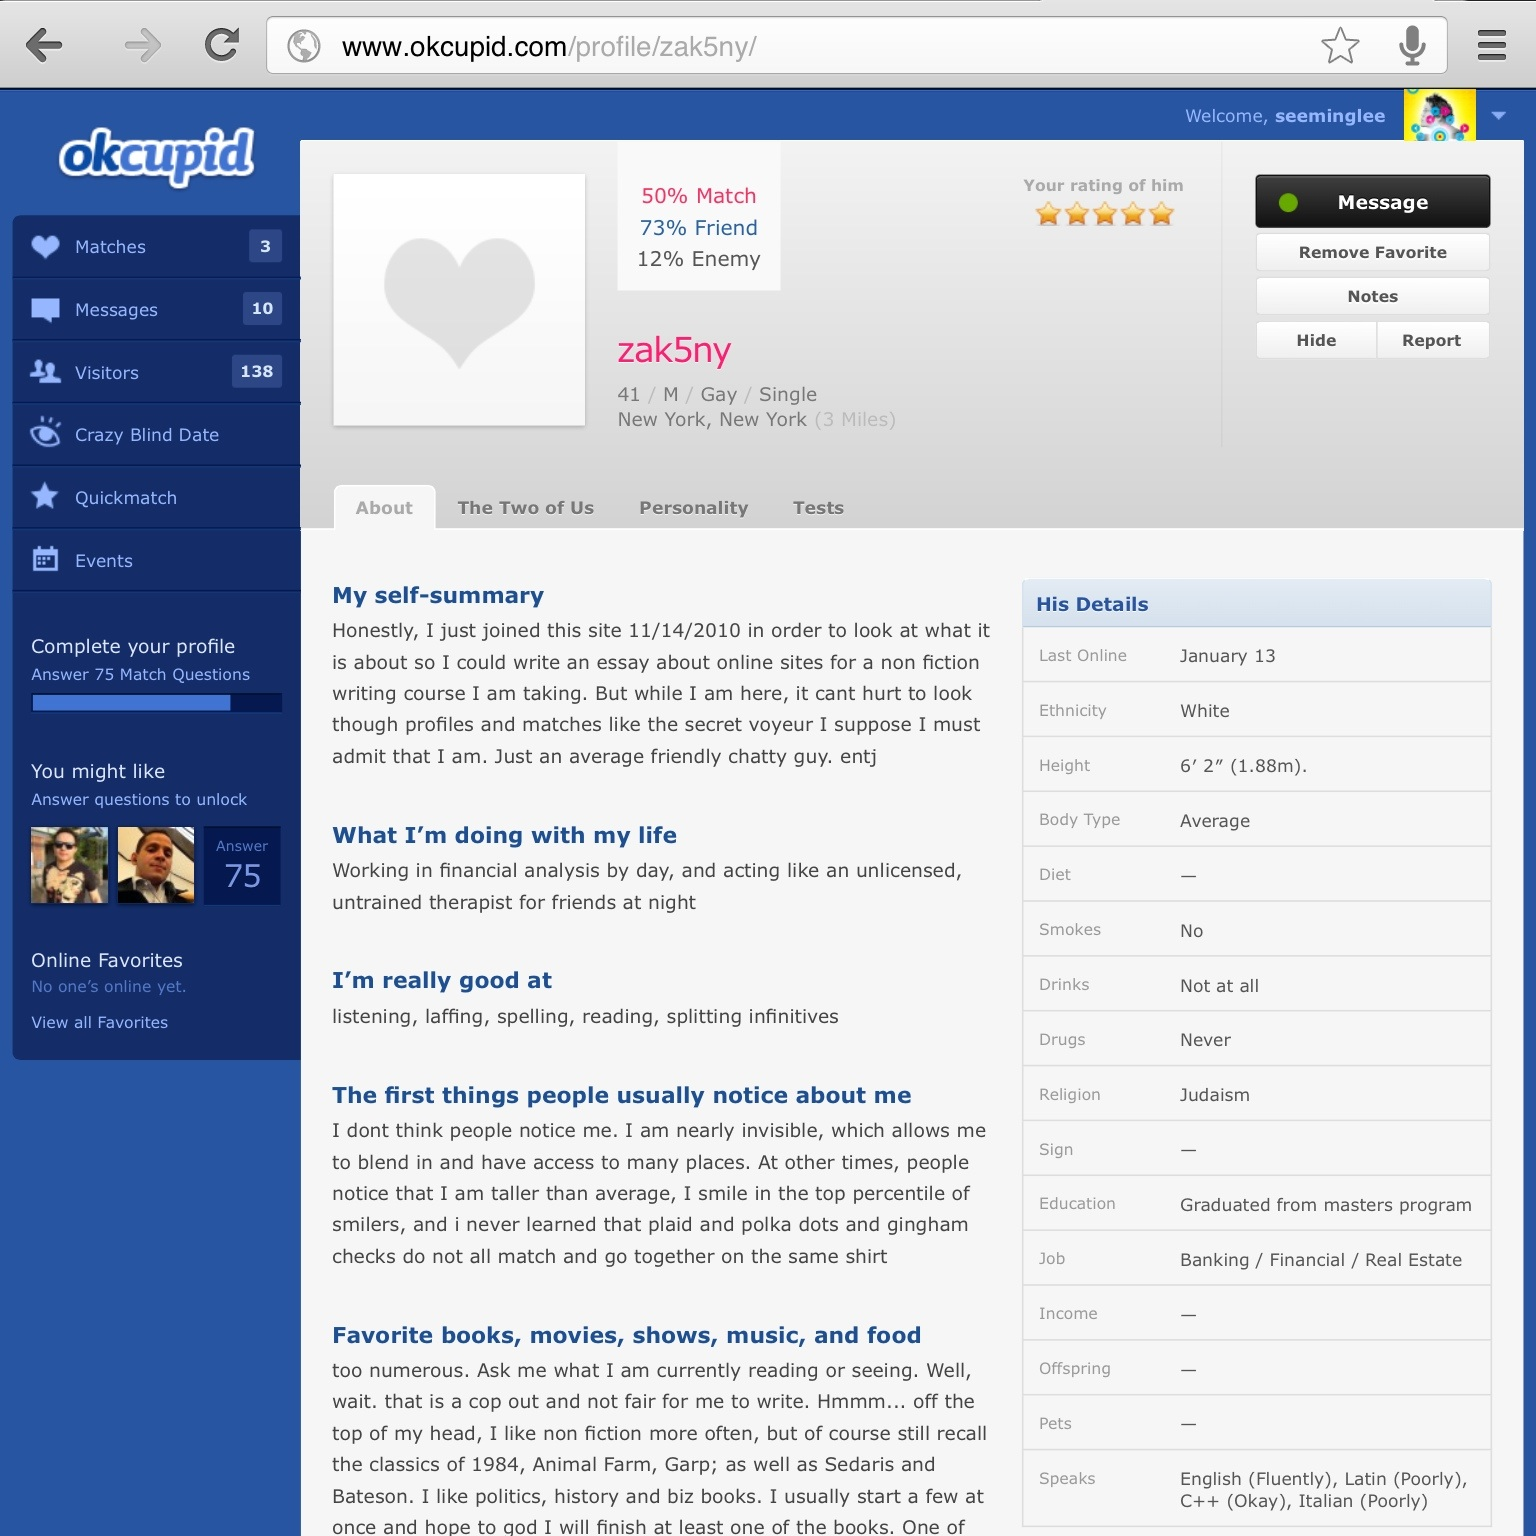 okcupid website